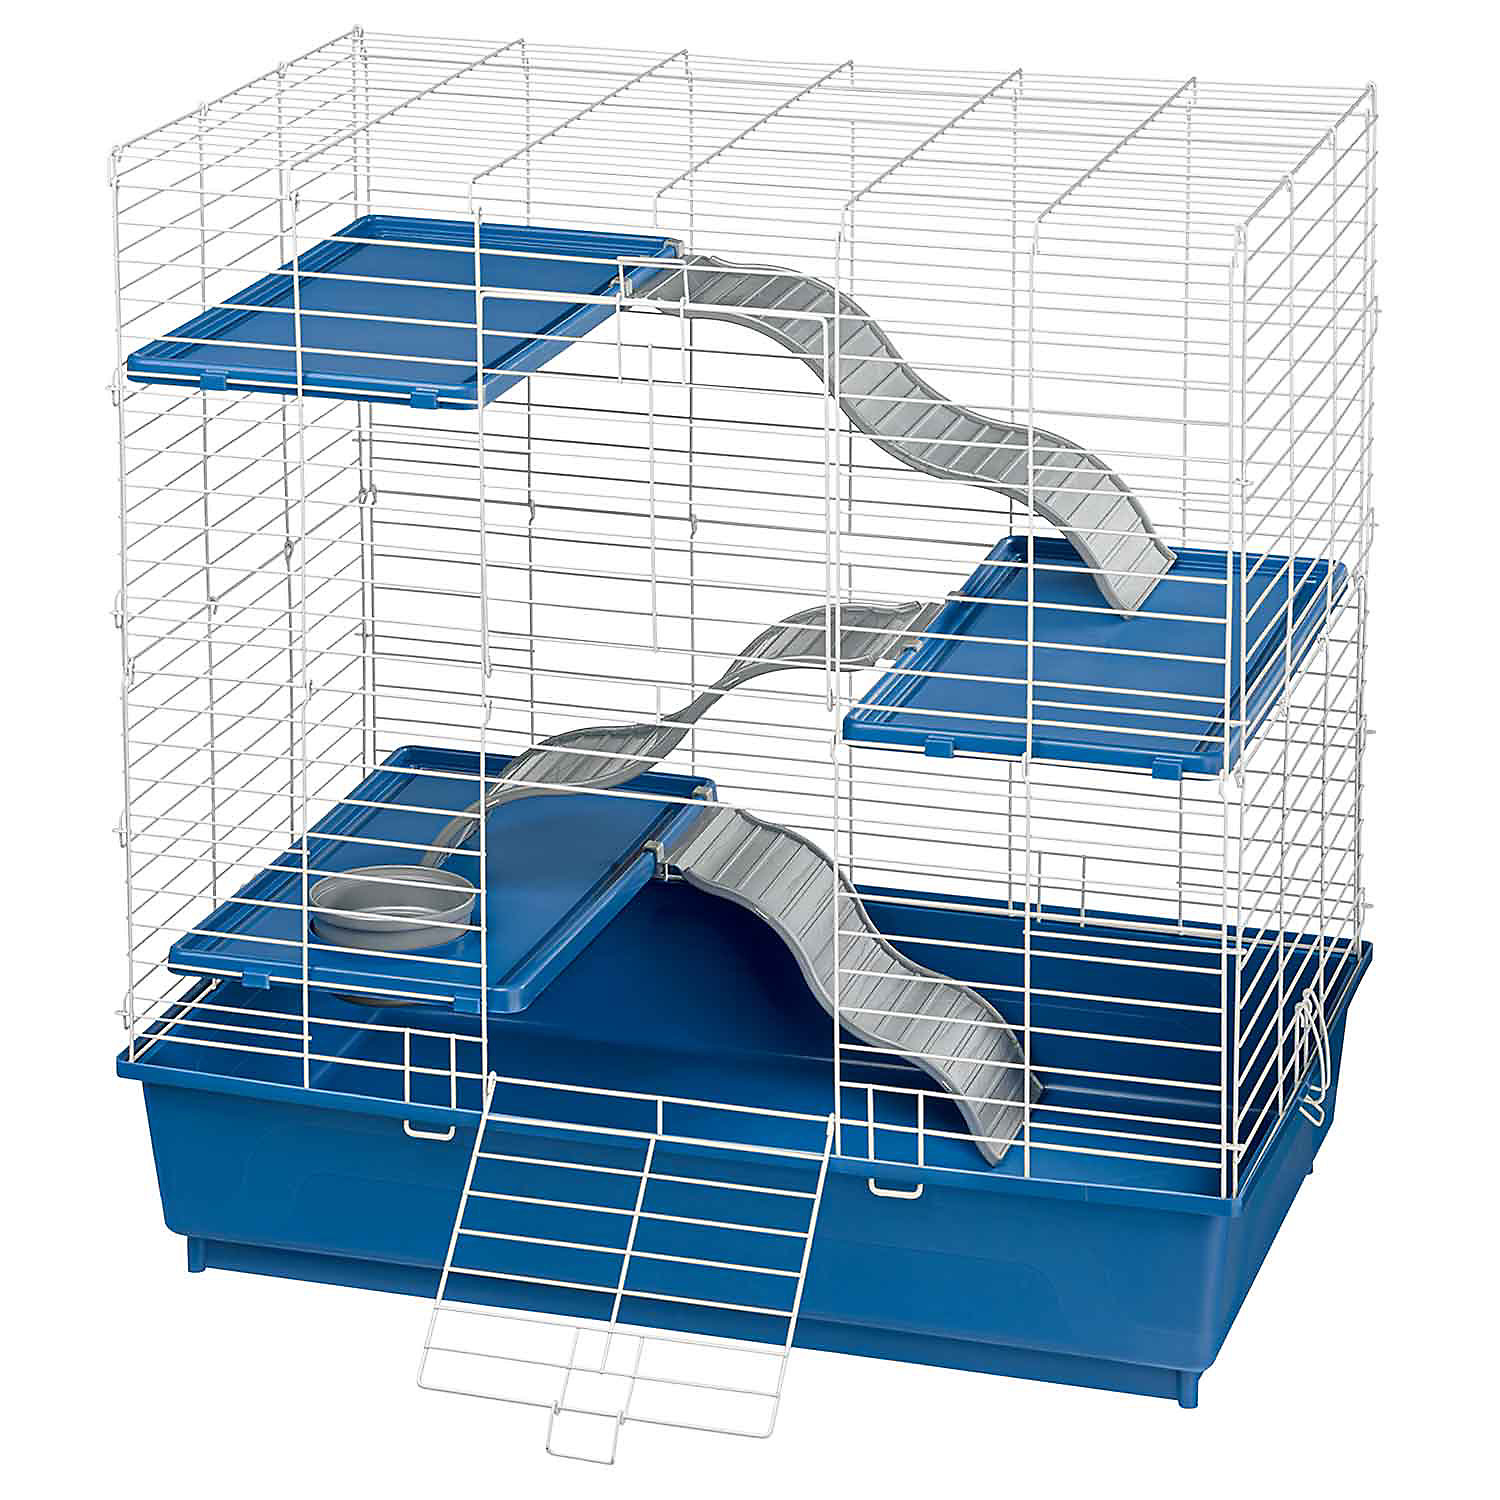 Kaytee Multi Level Ferret Home 30.5L X 18W X 30.5H 30.5 IN Blue